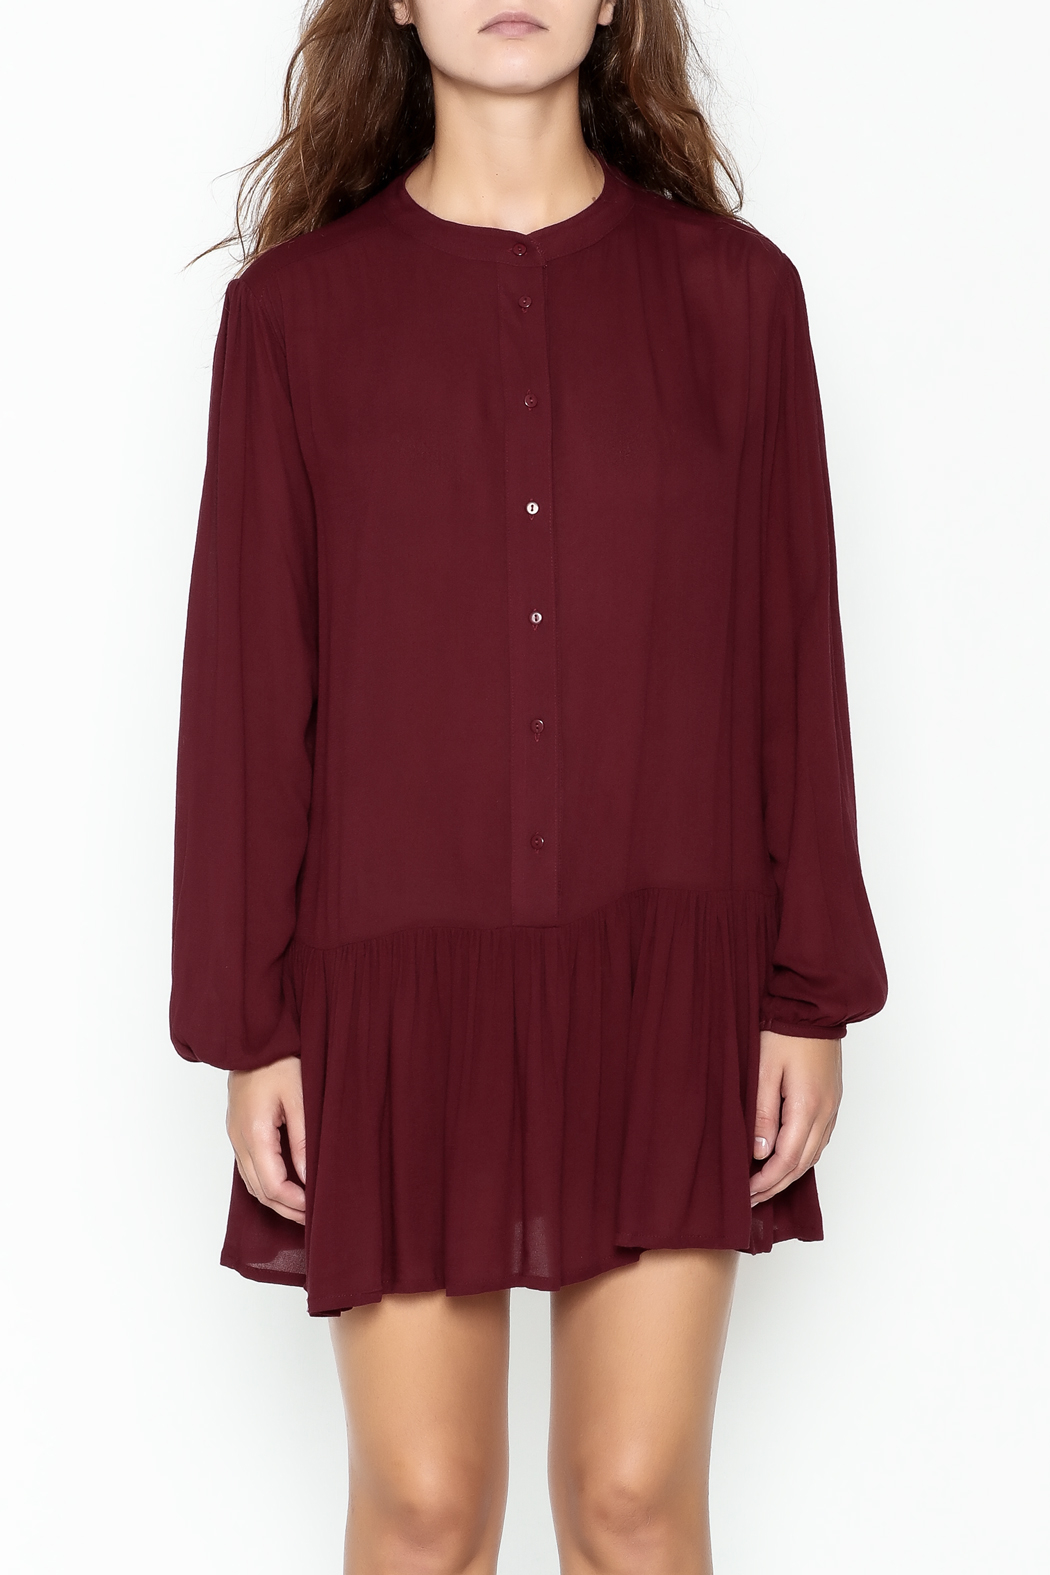 ee:some Button Down Tunic Dress - Main Image